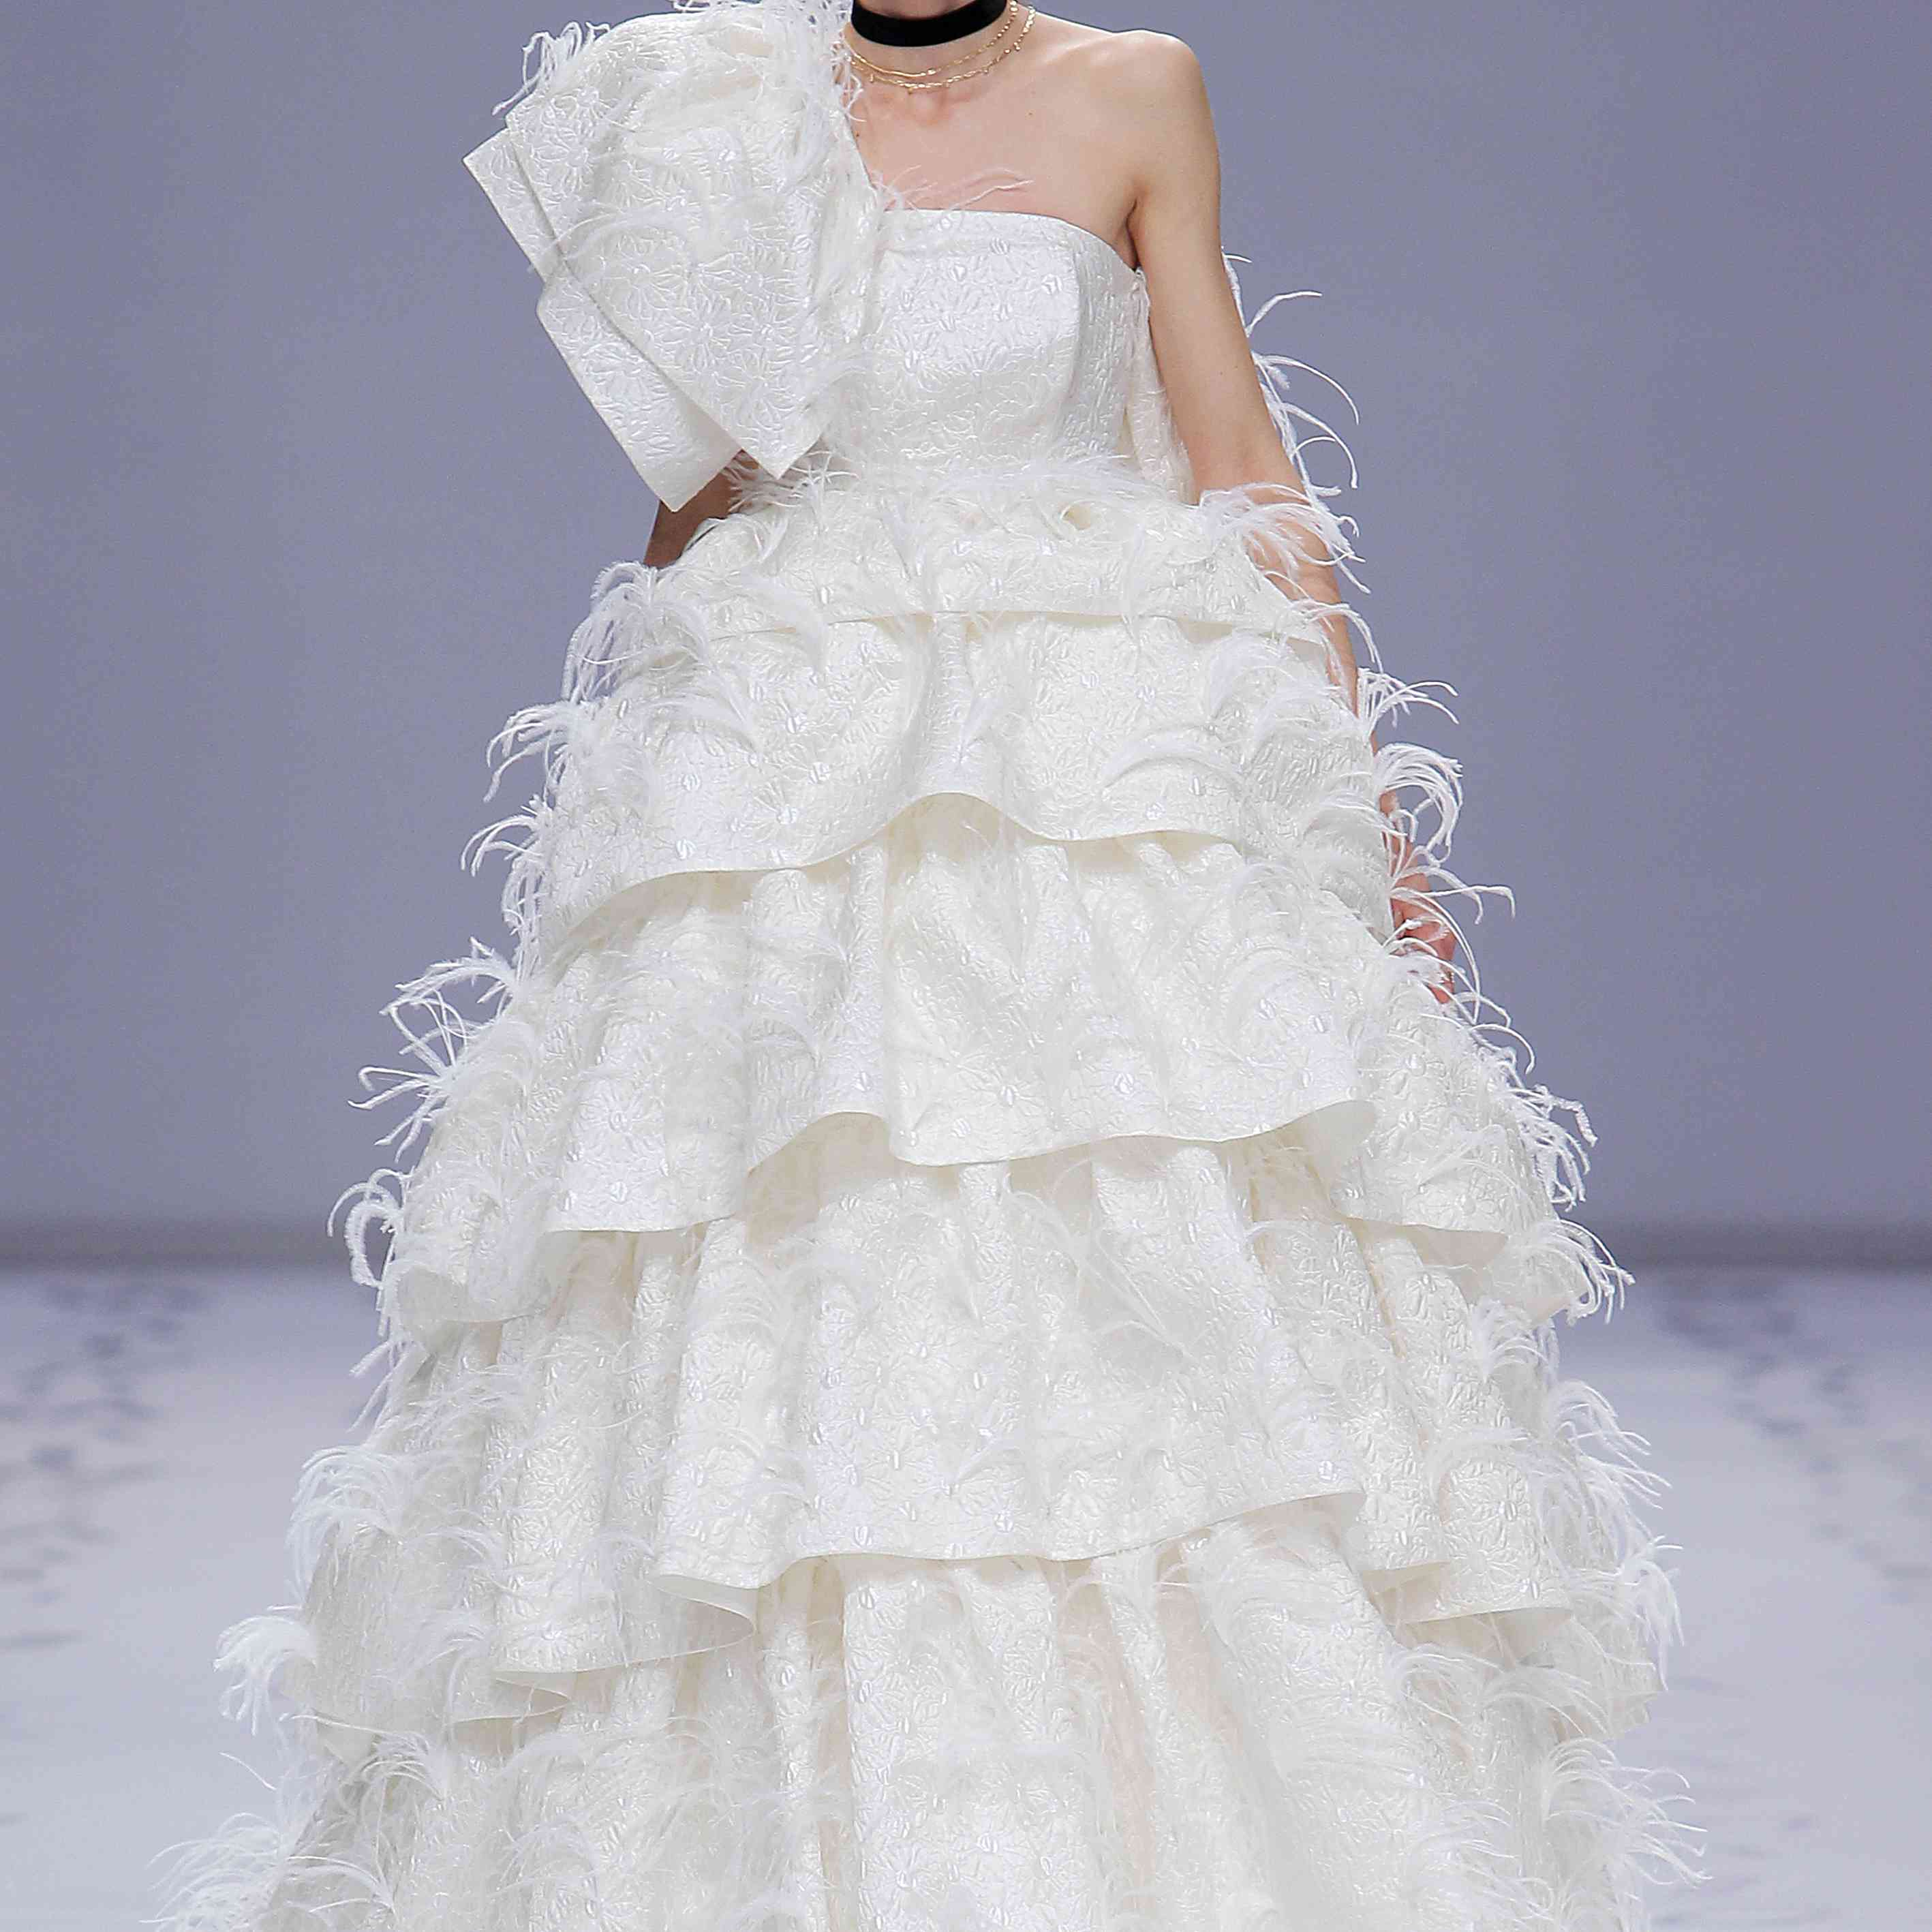 Model in a one-shoulder silk princess gown with floral imprints and ostrich feathers featuring a pleated asymmetrically tiered skirt